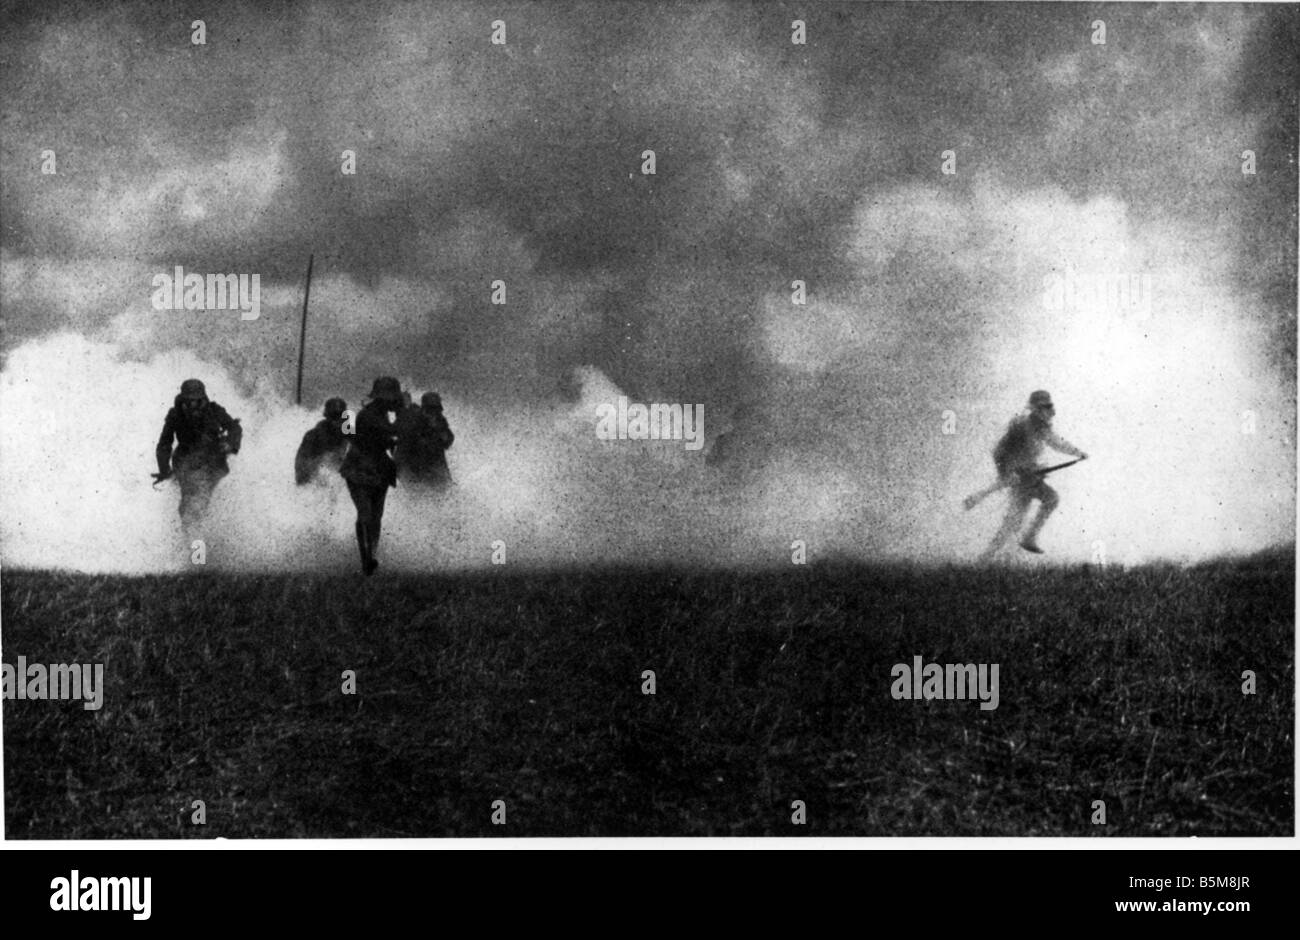 2 G55 G1 1915 Gas attack on Eastern Front WWI 1915 History World War I Gas war German soldiers after an enemy gas - Stock Image